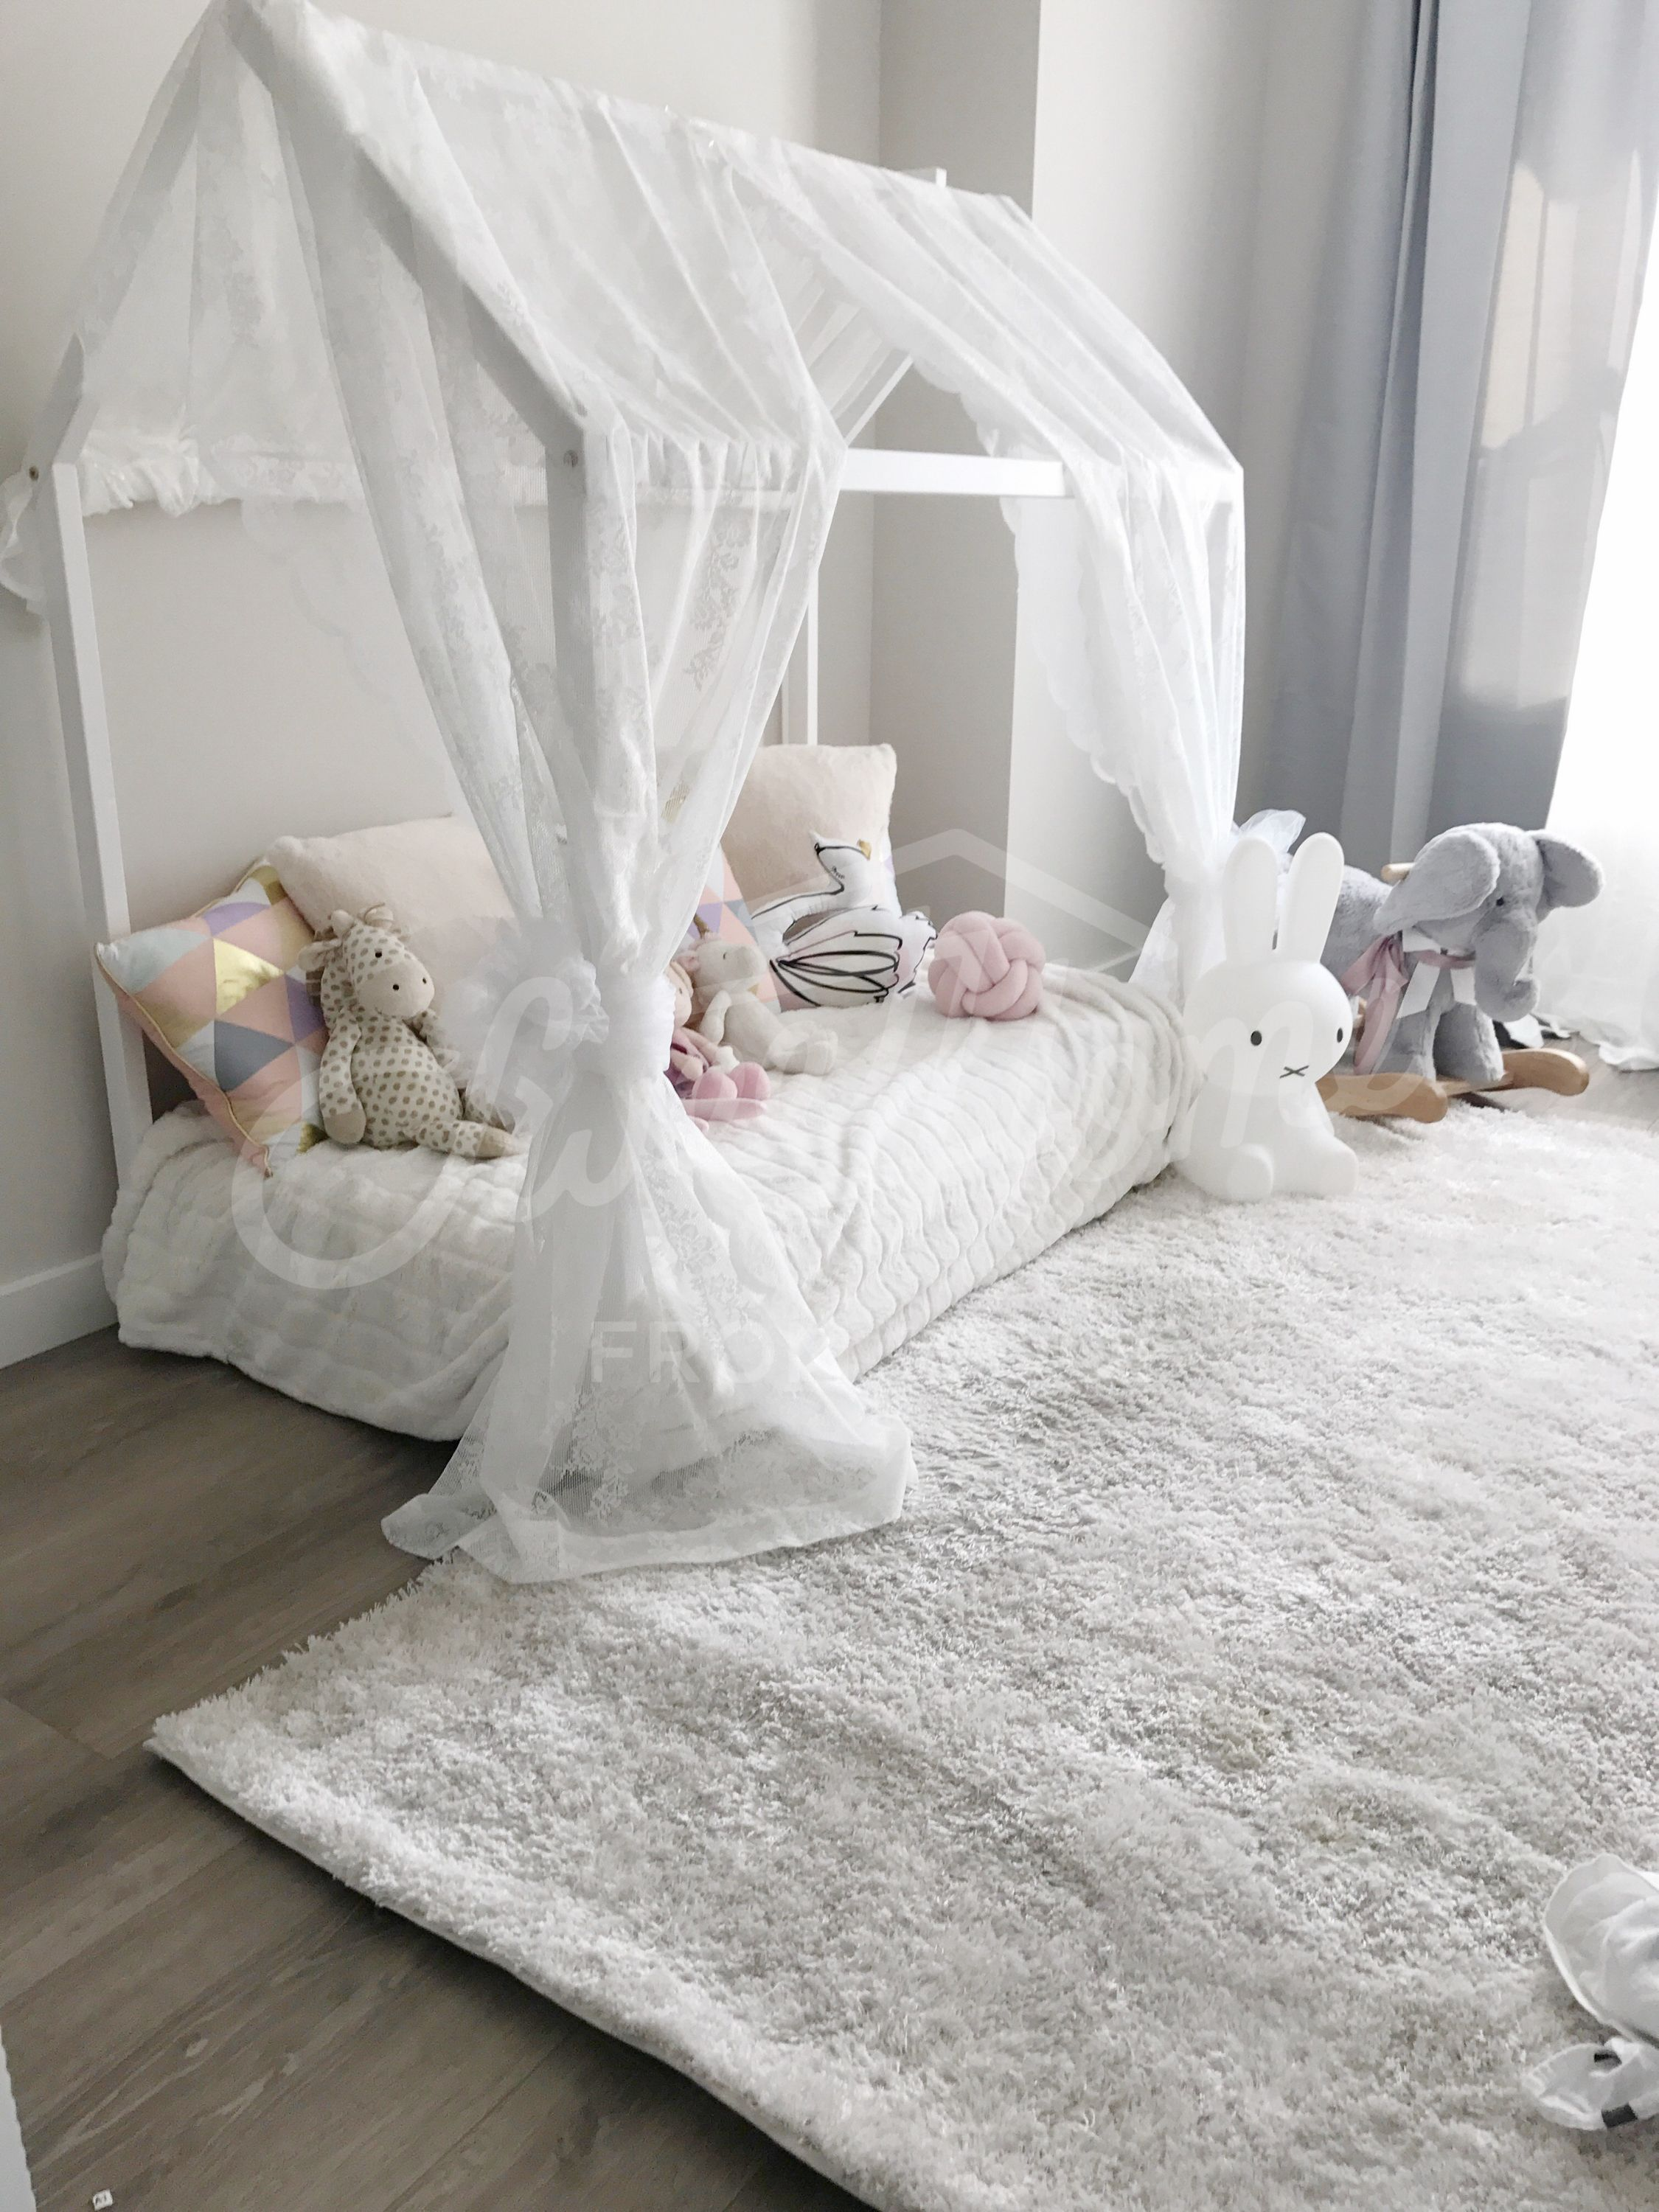 White Little Princess Room Toddler Bed House Shaped Bed Nursery Wood House Bed Bed Home Montessori Toy Frame Bed Original Be Bed Tent Toddler Rooms Kid Beds